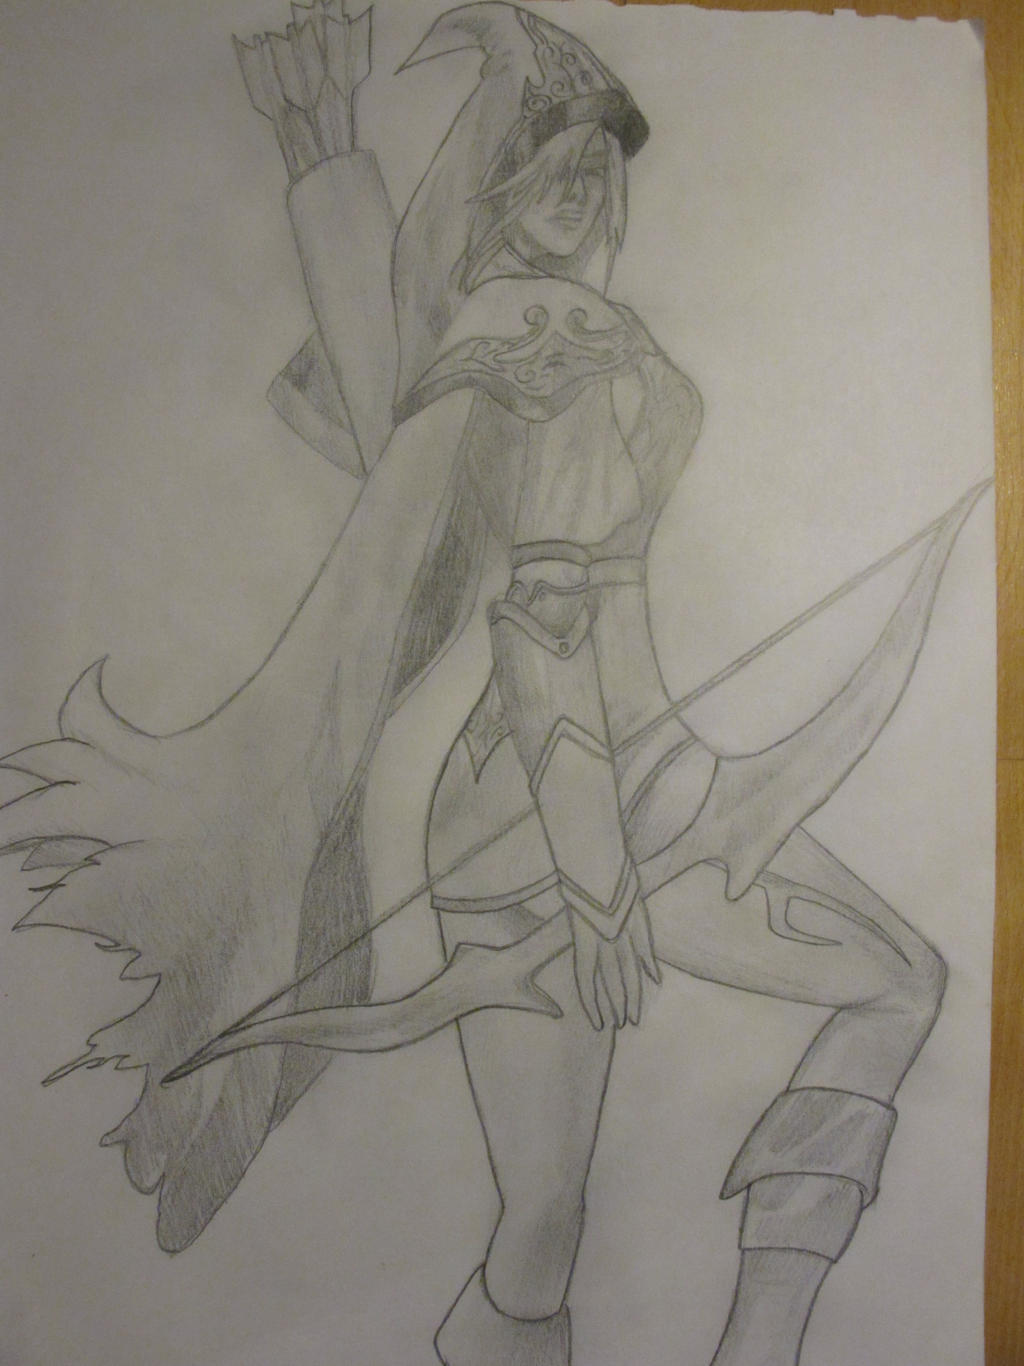 League Of Legends Old Ashe Pencil Drawing By Ilommii On Deviantart All the best league of legends sketch 39+ collected on this page. legends old ashe pencil drawing